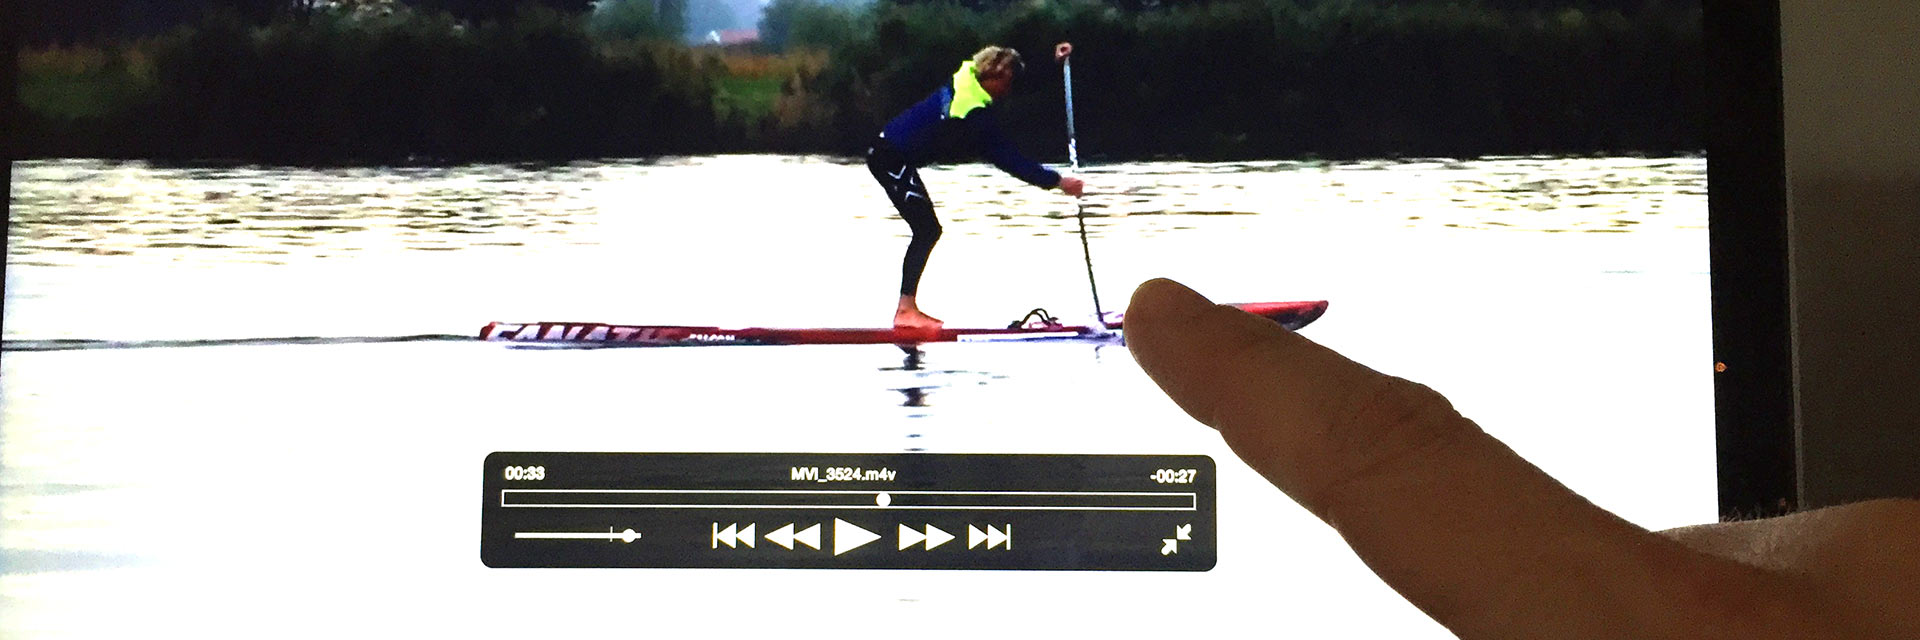 SUP-School-The-Netherlands-Holland-technique